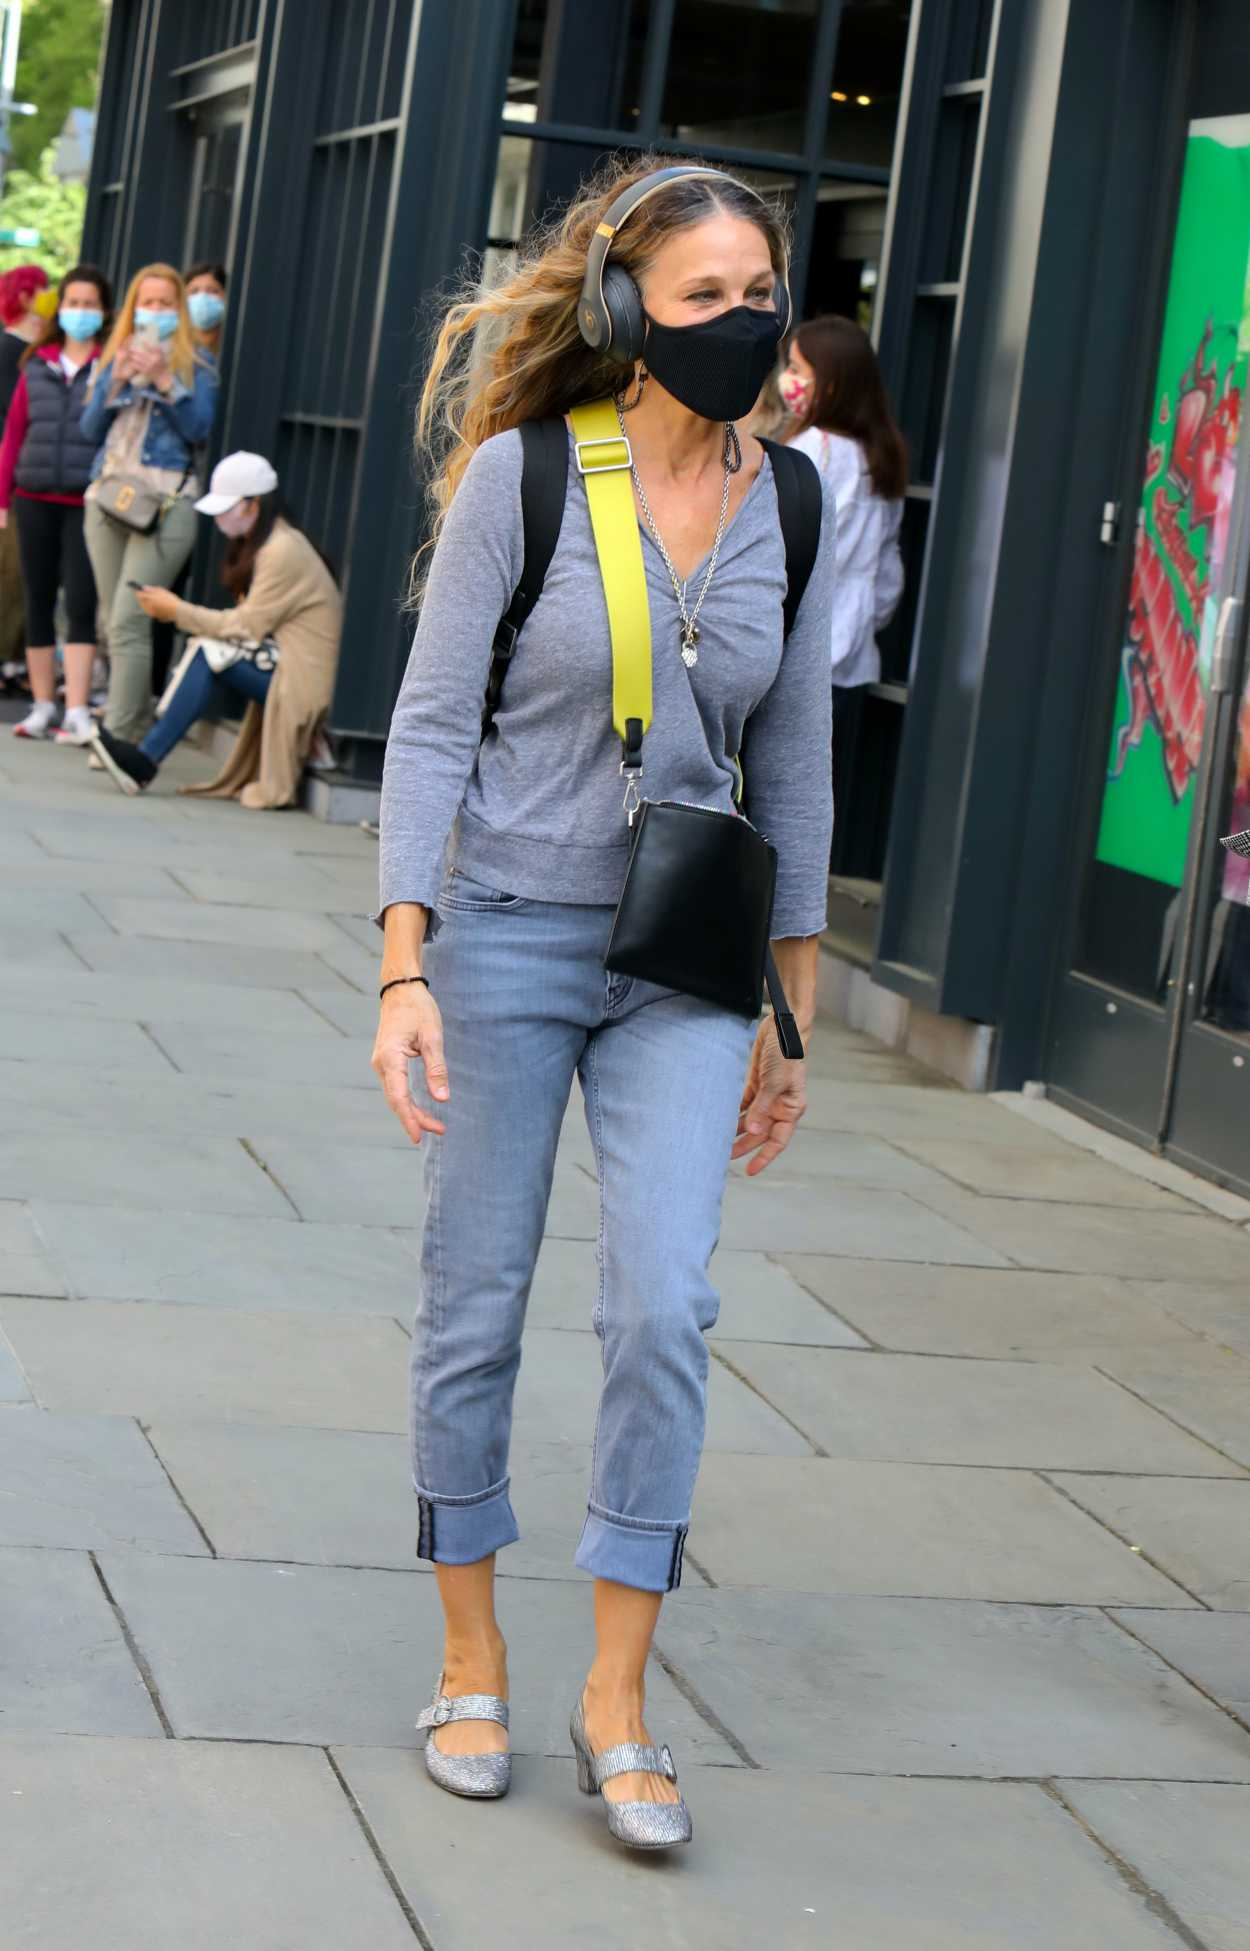 Sarah Jessica Parker at 54th Street in New York 04/10/2021